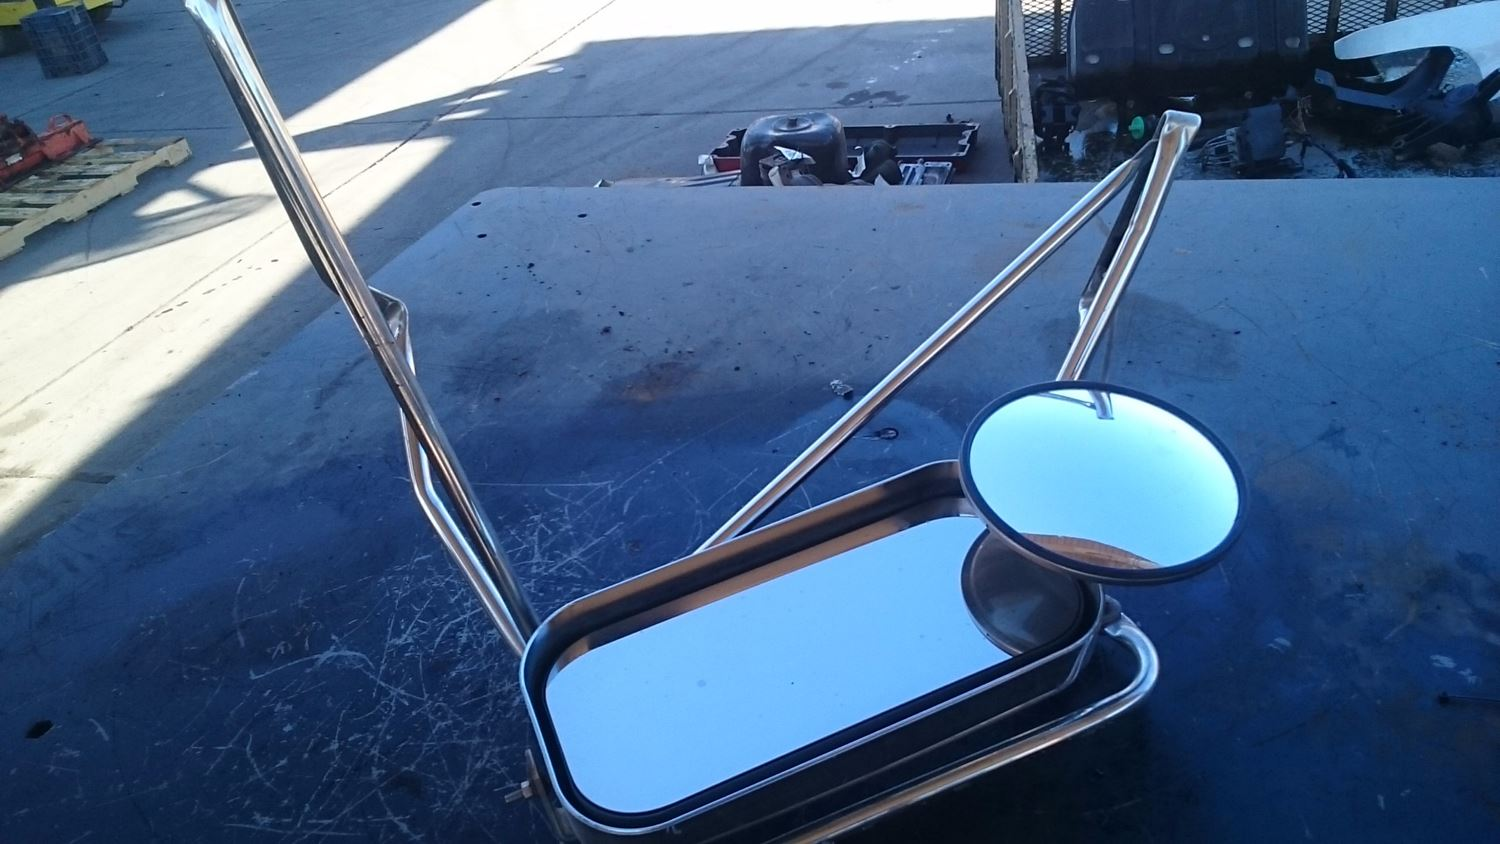 Side View Mirrors New And Used Parts American Truck Chrome Gm 2000 Wiring Harness Rear Mirror Complete For 2003 Sterling A9500 Lh With Plastic Cover